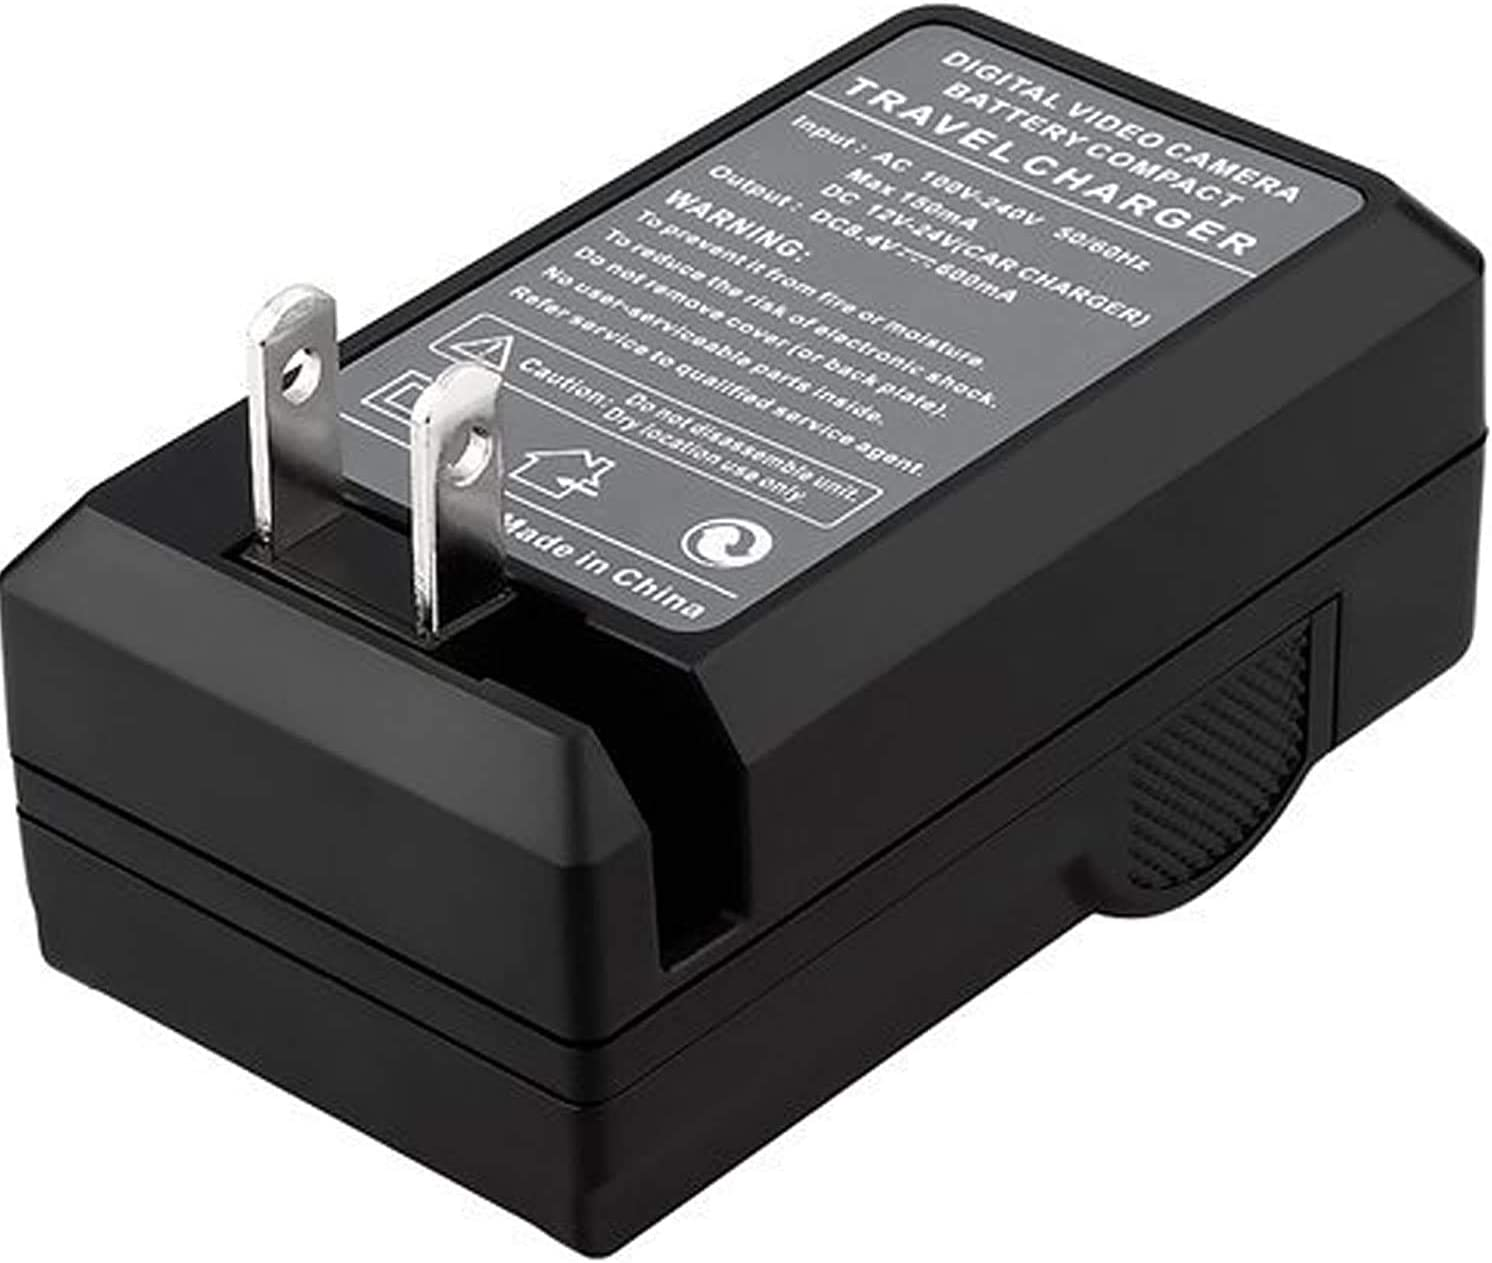 Nixxell Charger for Panasonic DMW-BCM13, DMW-BCM13PP Lumix DMC-TZ37, DMC-TZ40, DMC-TZ41, DMC-TZ55, DMC-TZ60, DMC-ZS27, DMC-ZS30, DMC-ZS35, and More